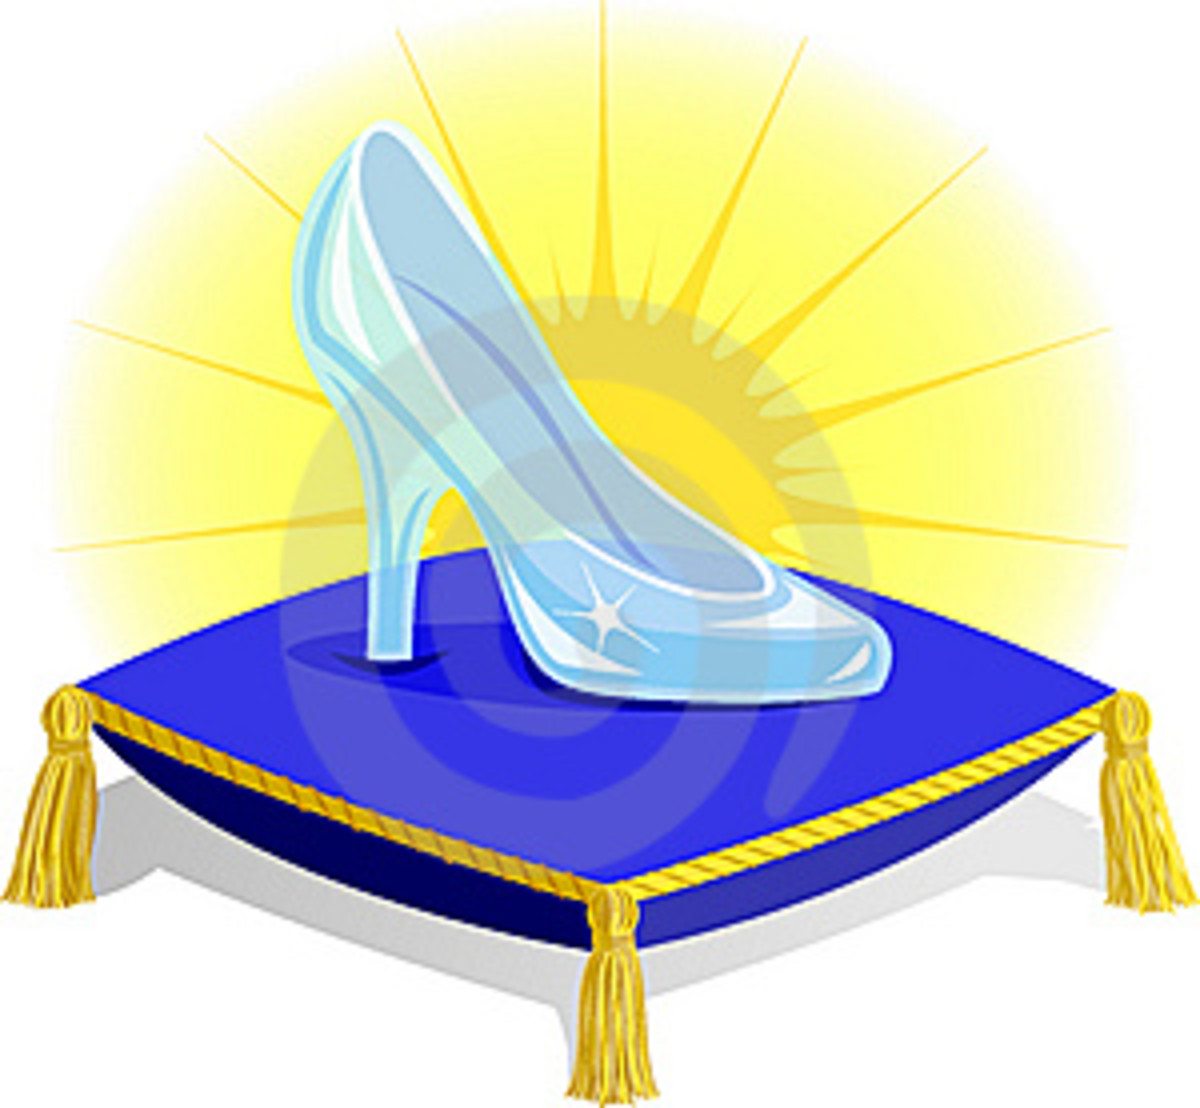 Top Cinderella Glass Slippers/Shoes For Girls and Adults!